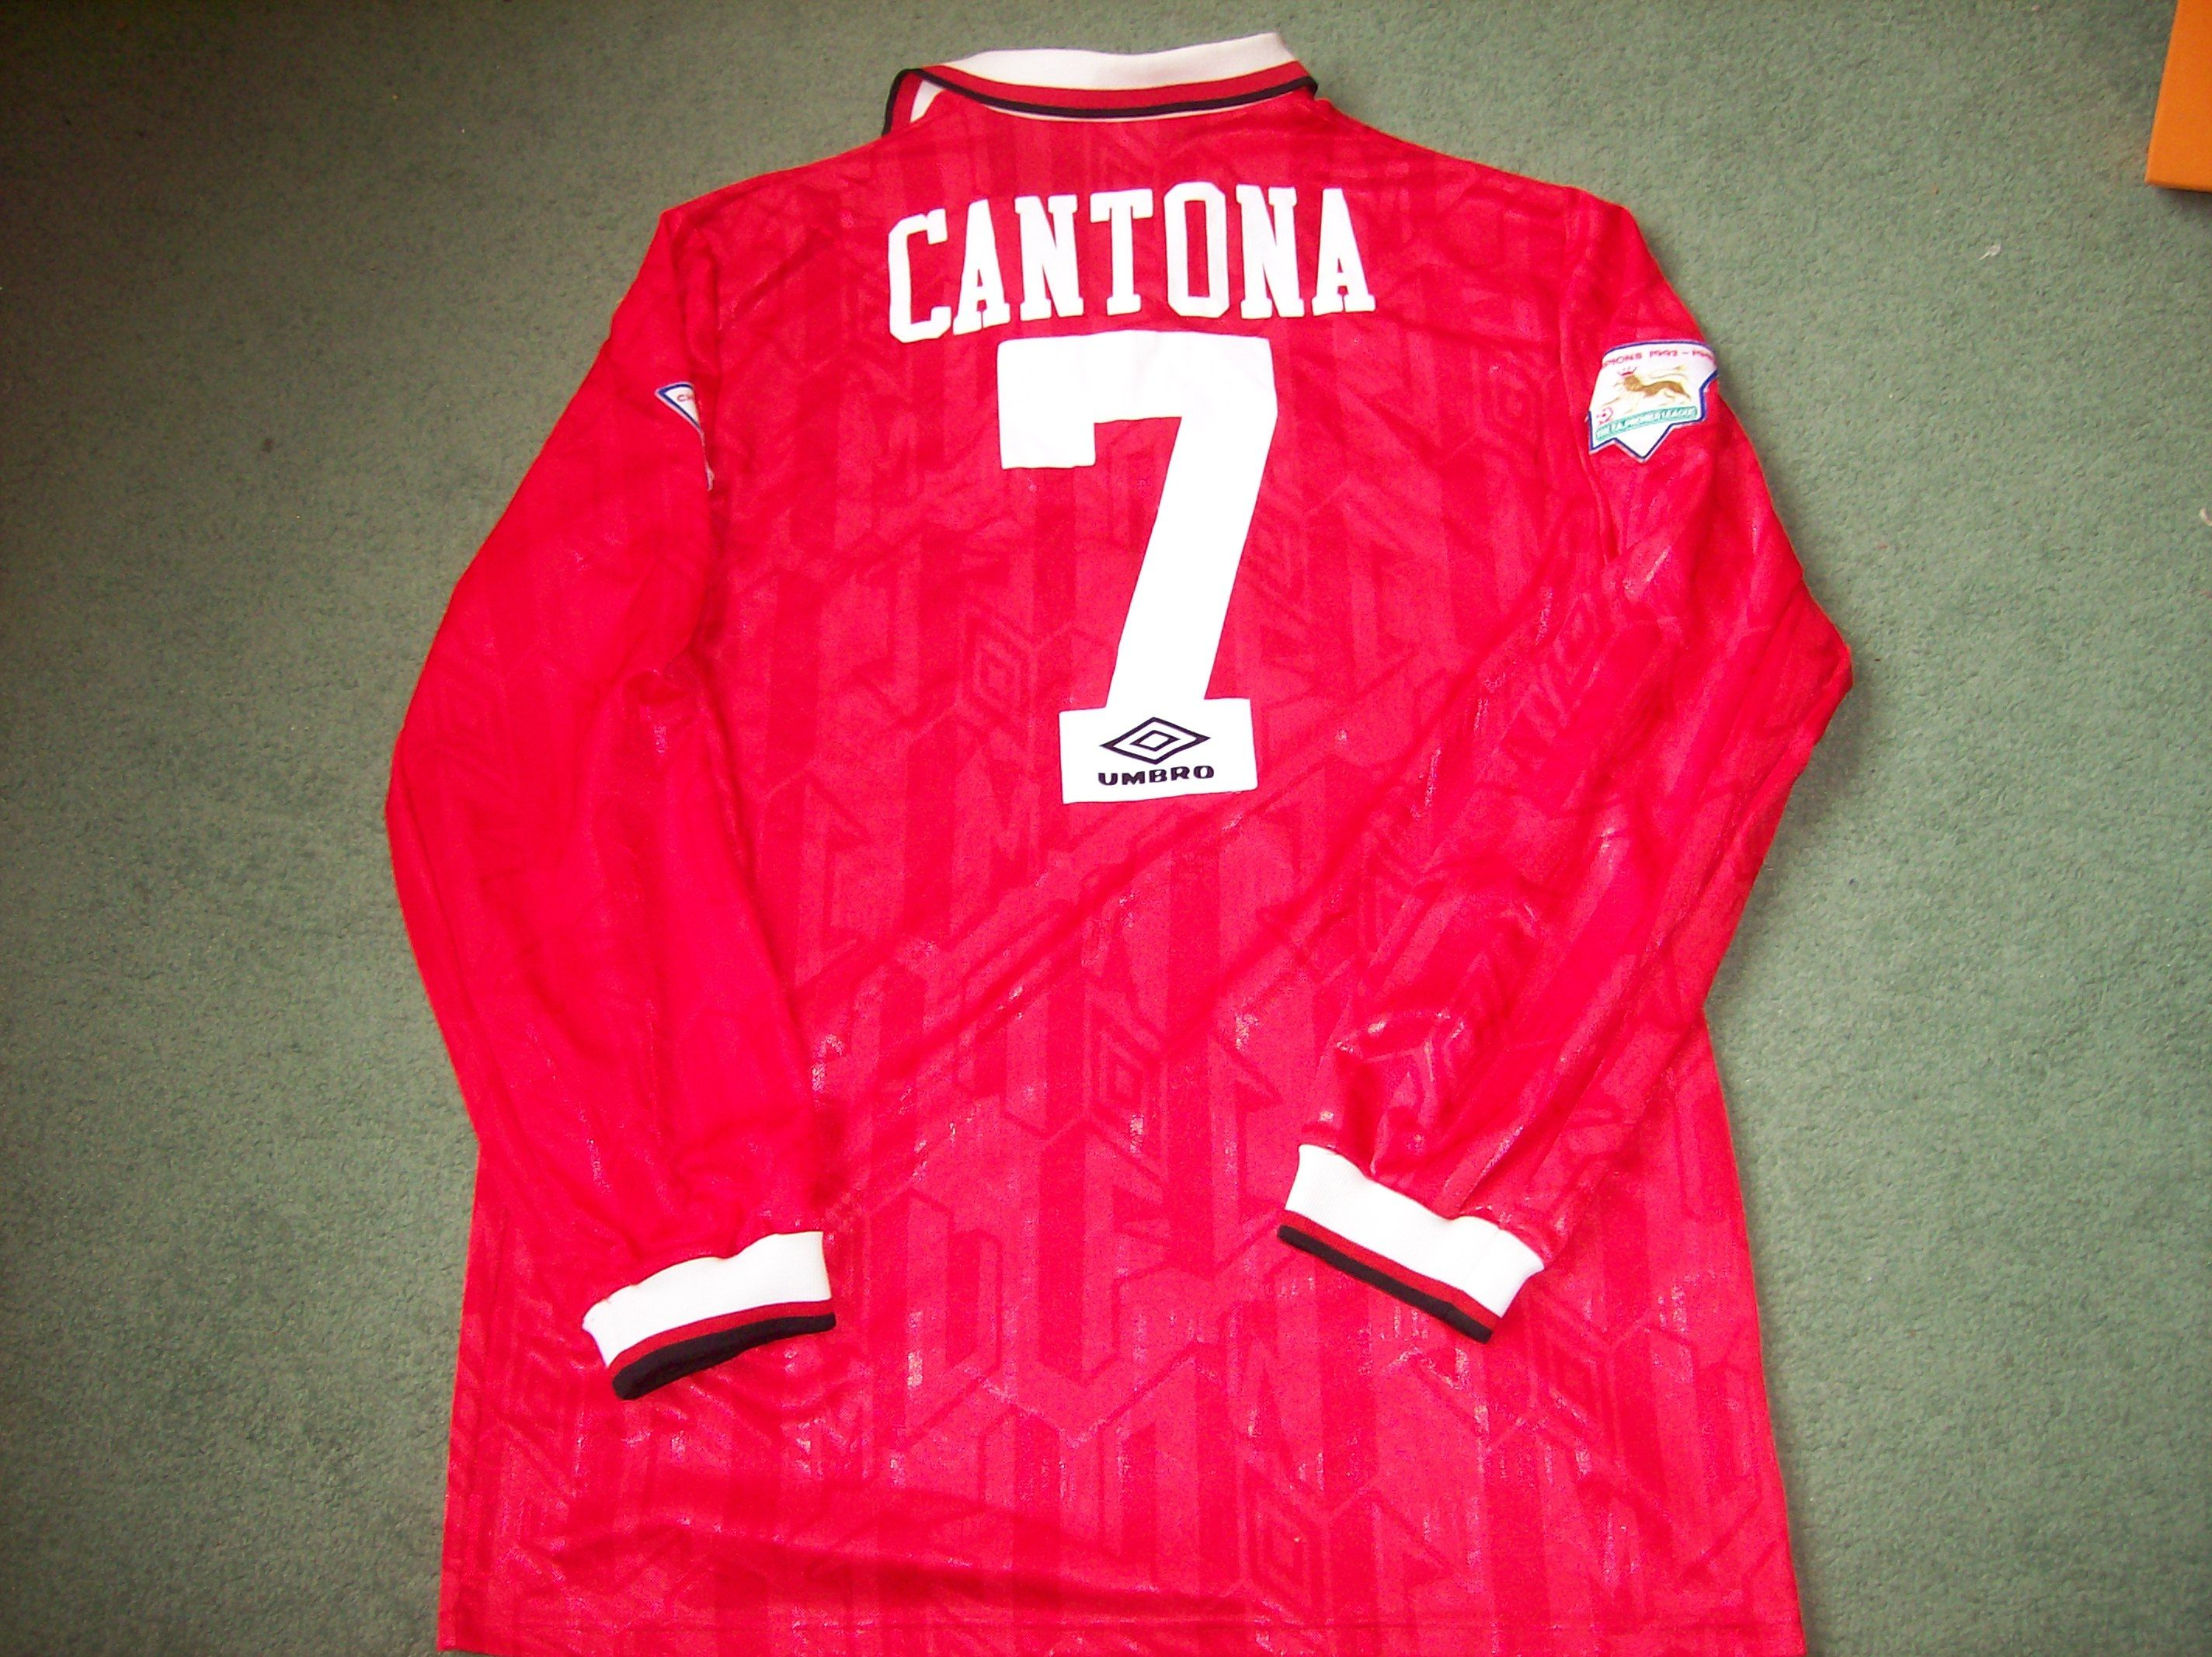 01f18c56d Manchester United L s Long sleeved football shirt from the 1993 94 season.  Player Issue Cantona   number 7 on the back